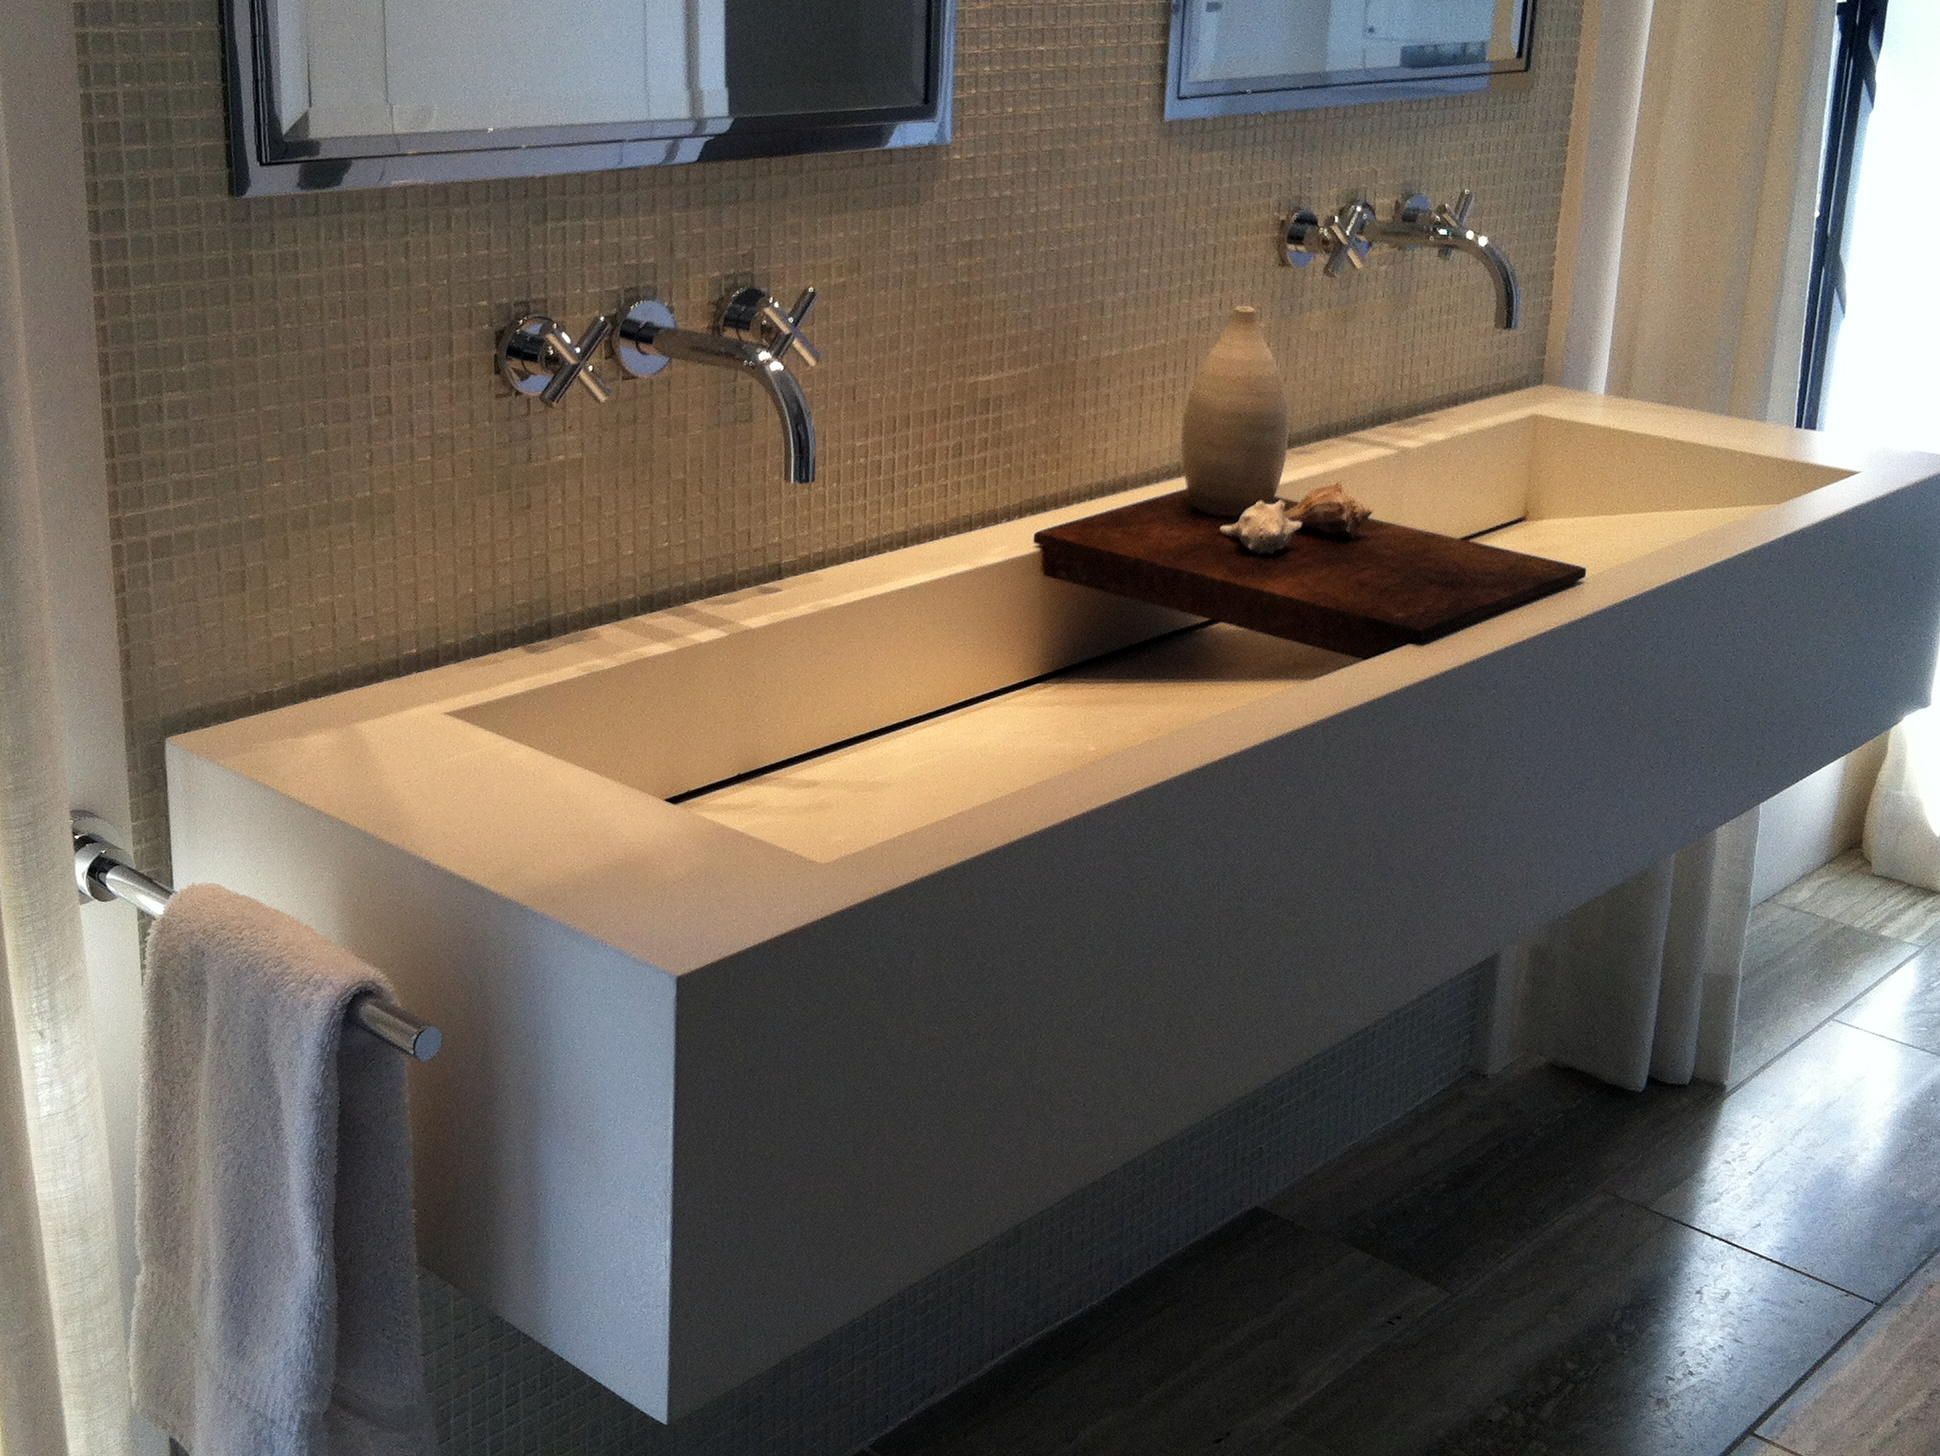 Sophisticated White Commercial Trough Sink With Wooden Soap Dish As ...